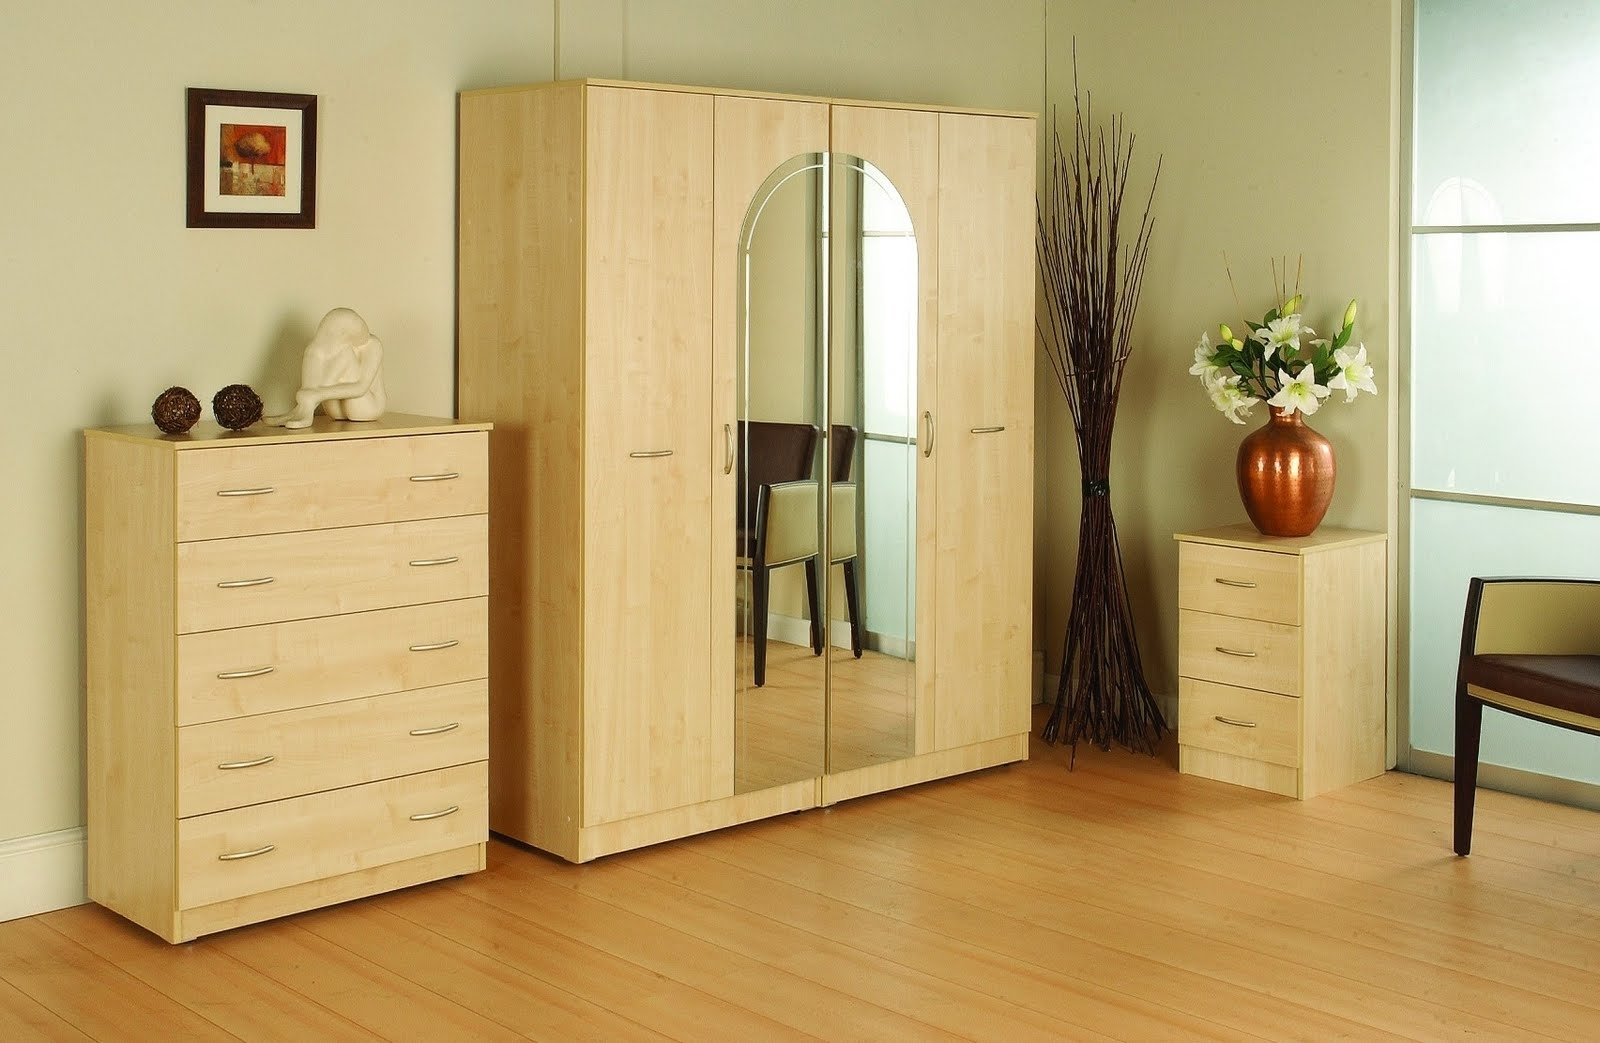 Bedroom Wardrobe Cabinets And Furniture (View 6 of 15)